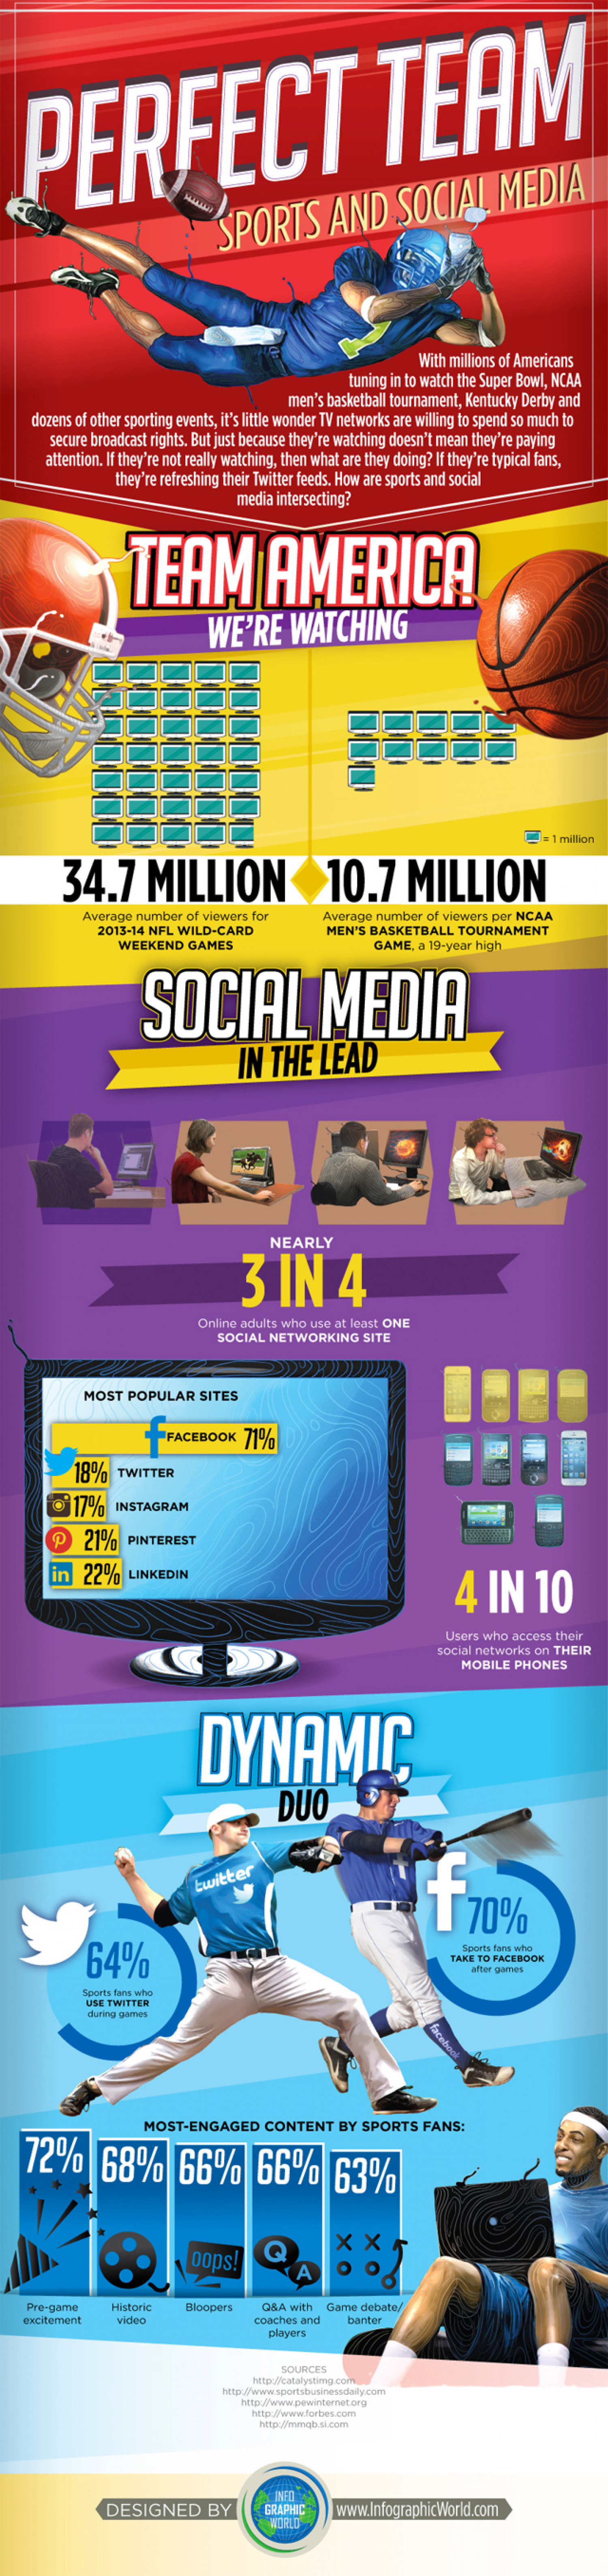 Perfect Team: Sports and Social Media Infographic